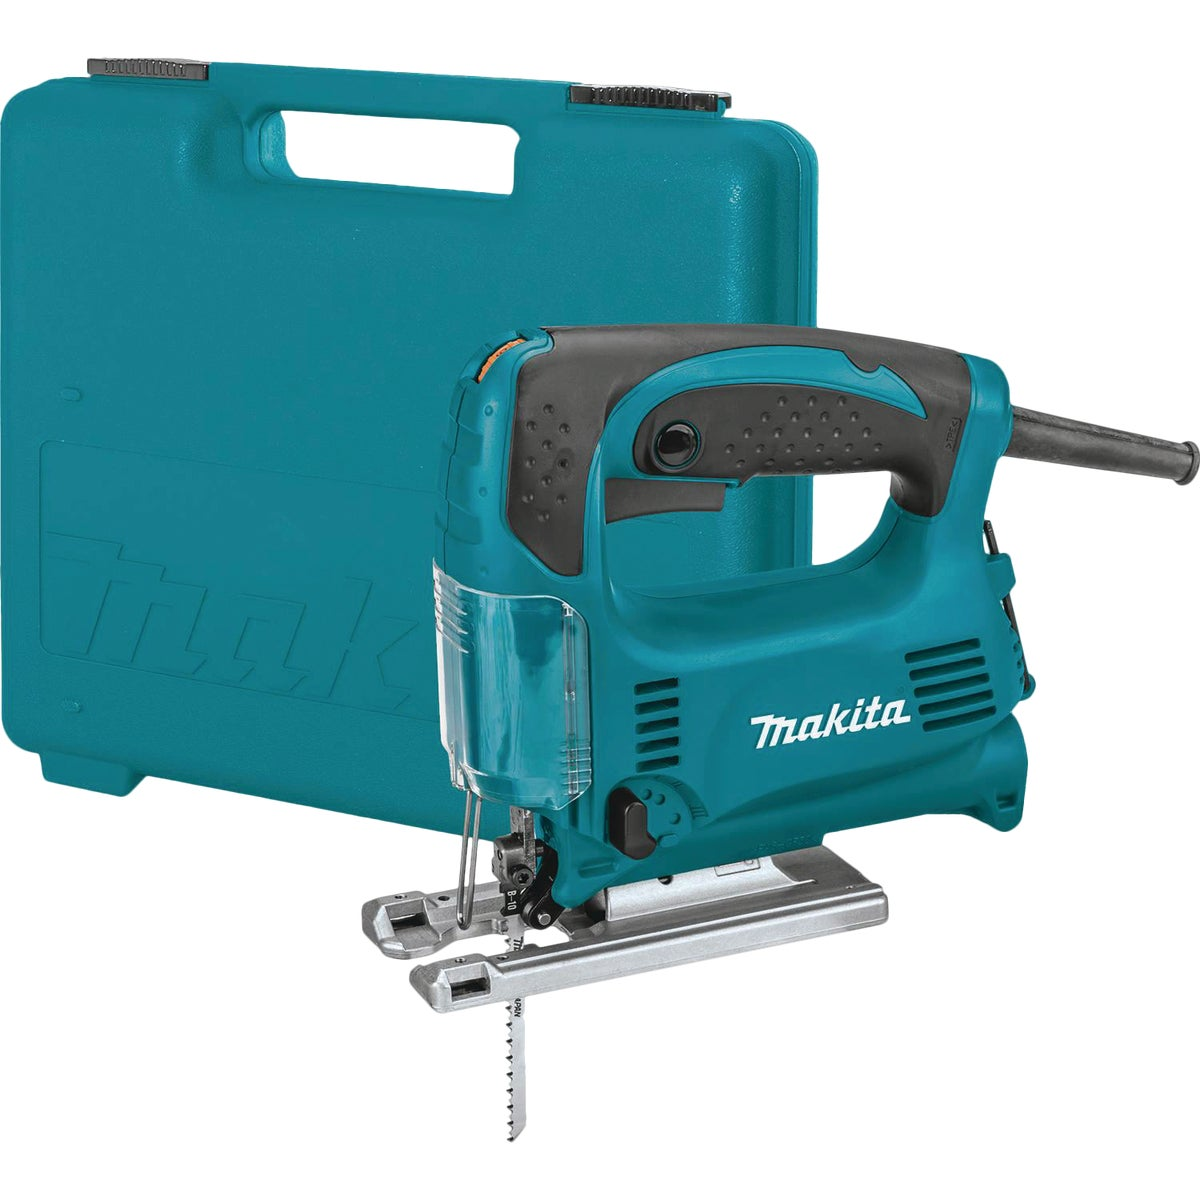 VS ORBITAL JIGSAW - 4329K by Makita Usa Inc